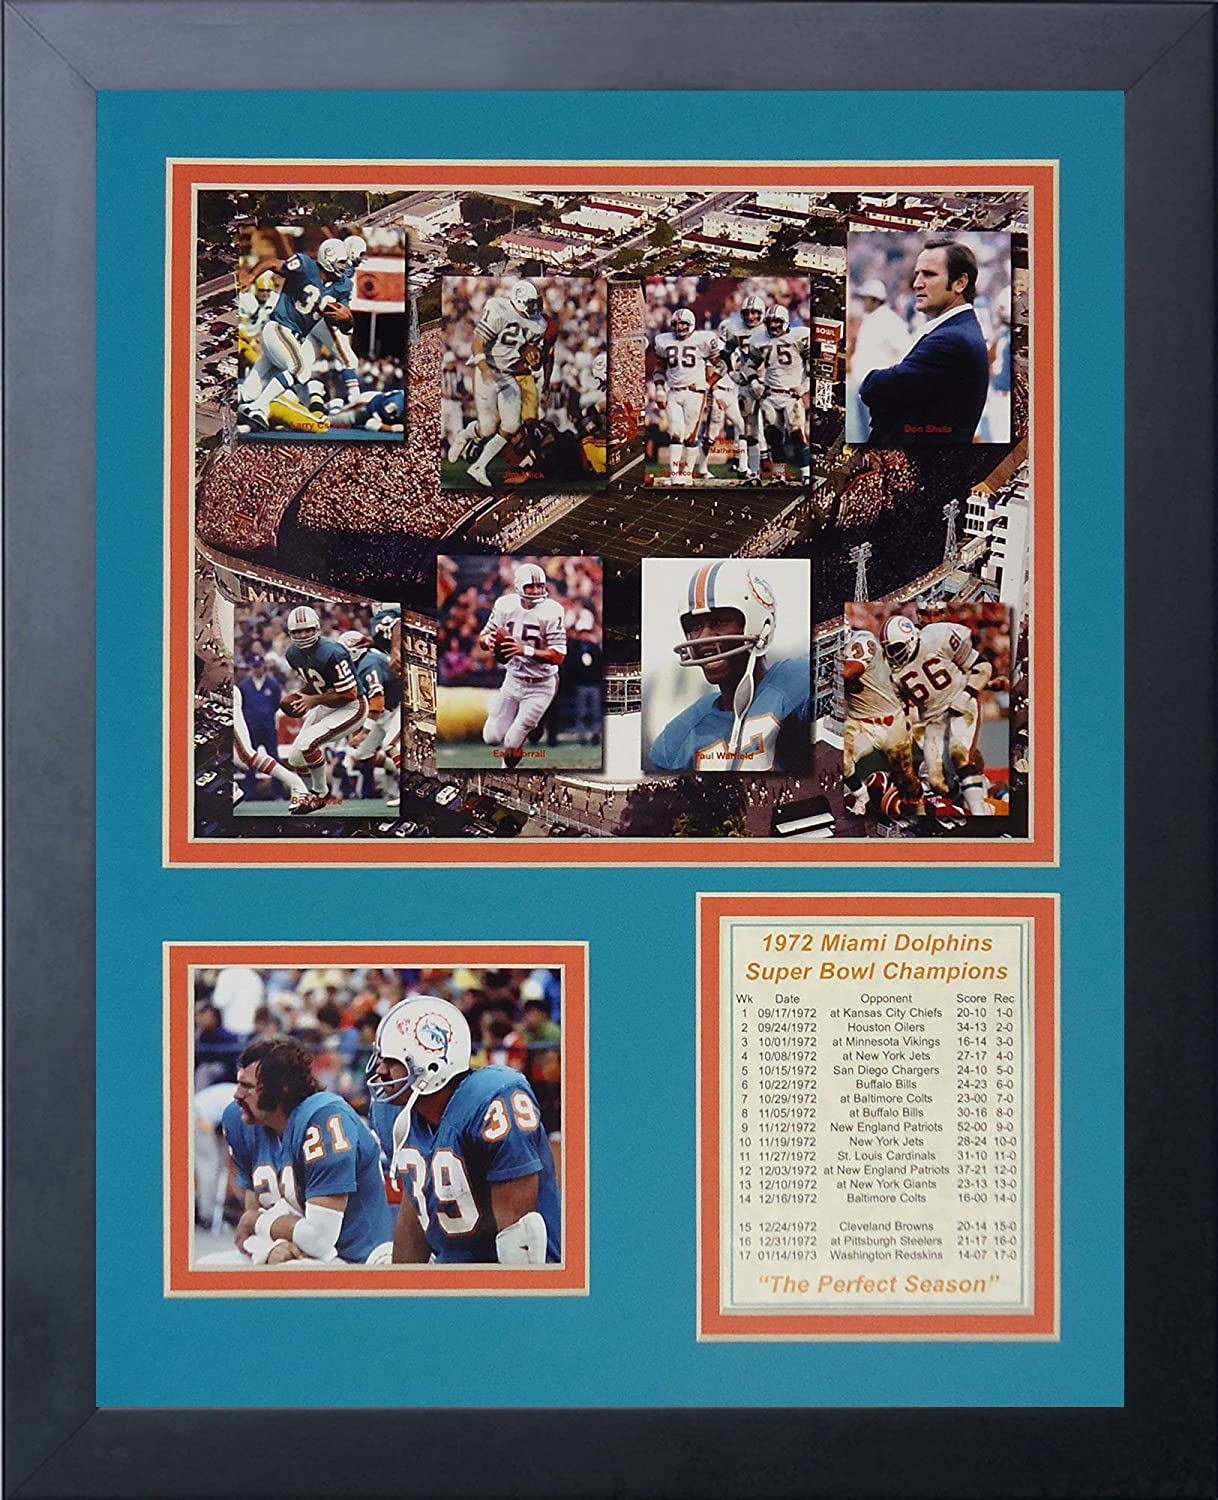 Amazon legends never die 1972 miami dolphins mosaic framed amazon legends never die 1972 miami dolphins mosaic framed photo collage 11x14 inch sports outdoors jeuxipadfo Image collections